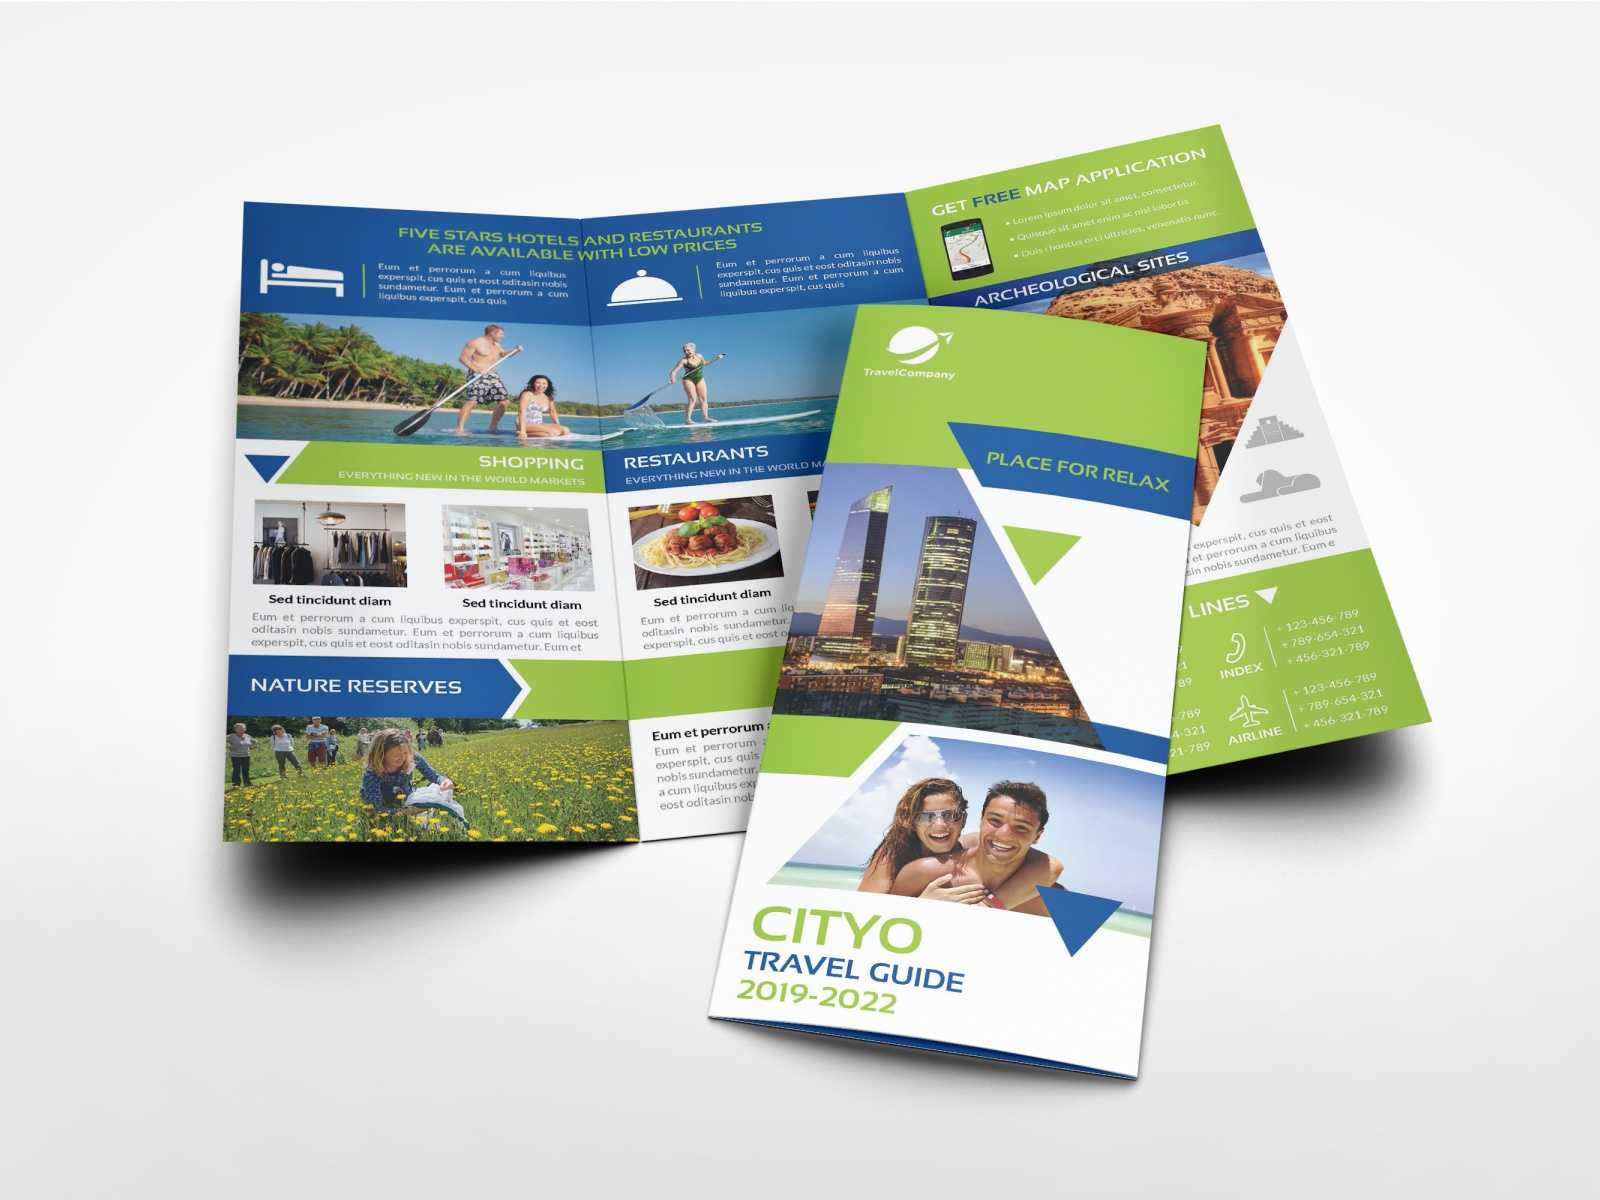 Travel Guide Tri Fold Brochure Templateowpictures On Within Travel Guide Brochure Template